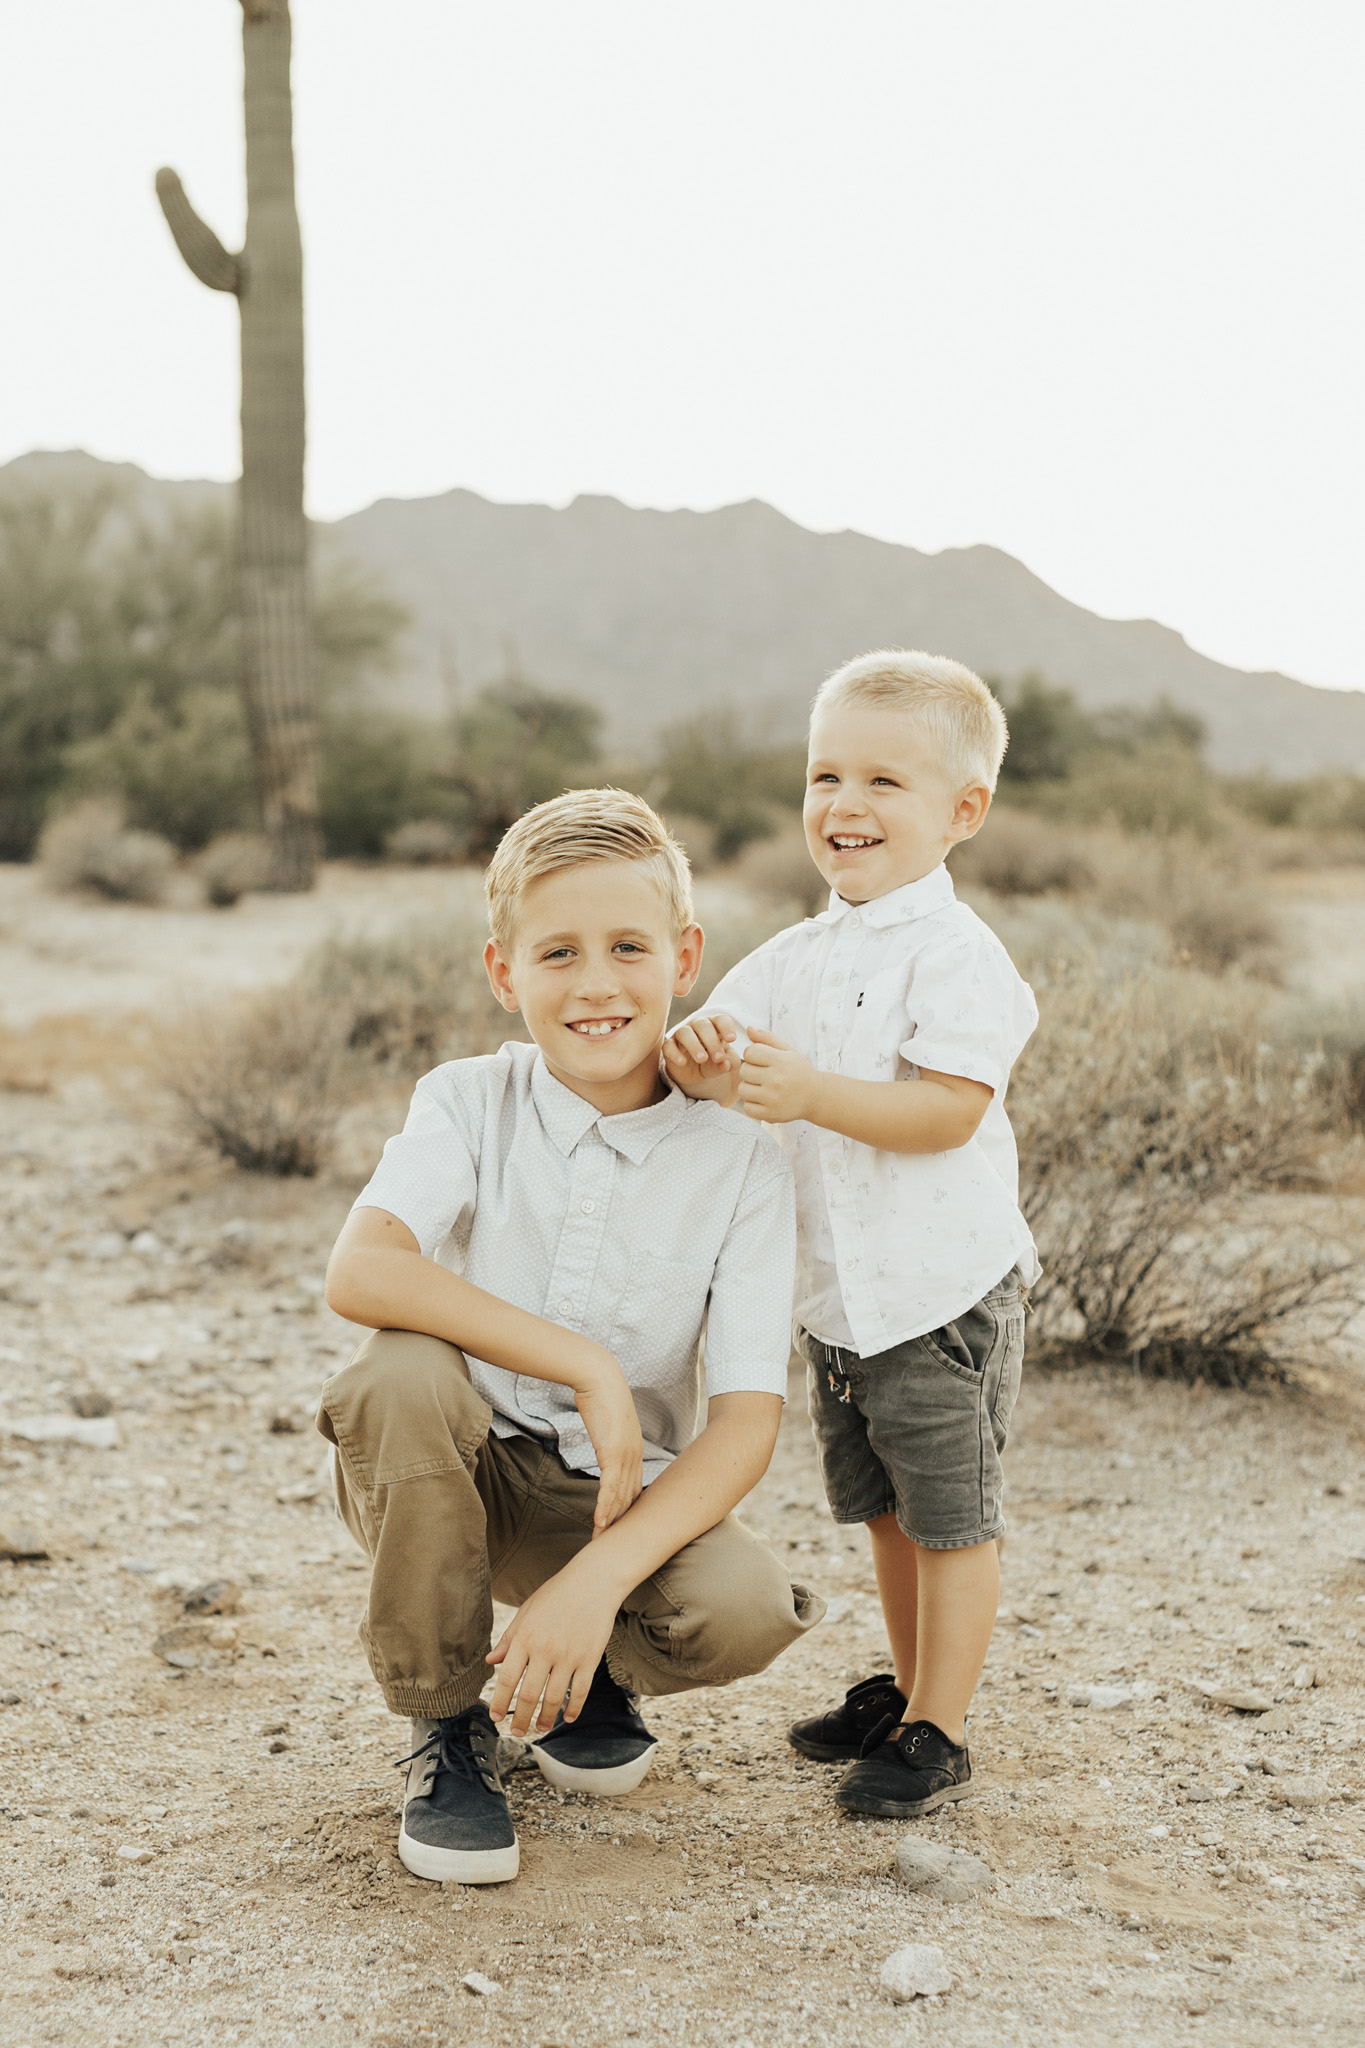 Captured by Shantell Blog | East Valley Family Photographer